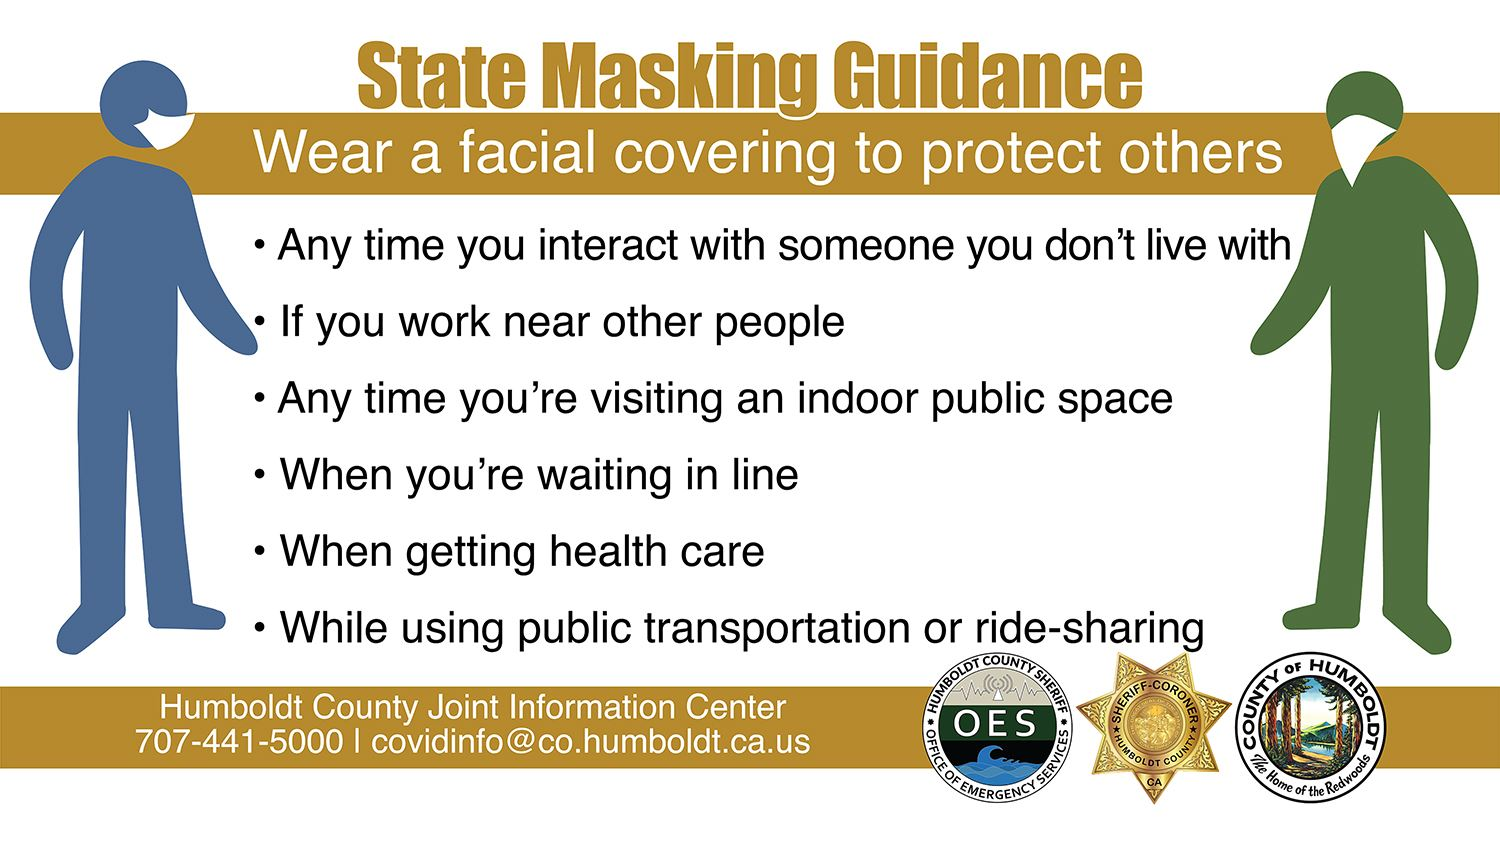 State guidance states facial coverings are to be worn: any time you interact with someone you don't live with, if you work near others, when visiting an indoor public space, when waiting in line, when getting health care, and while using public transpiration or ride-sharing.